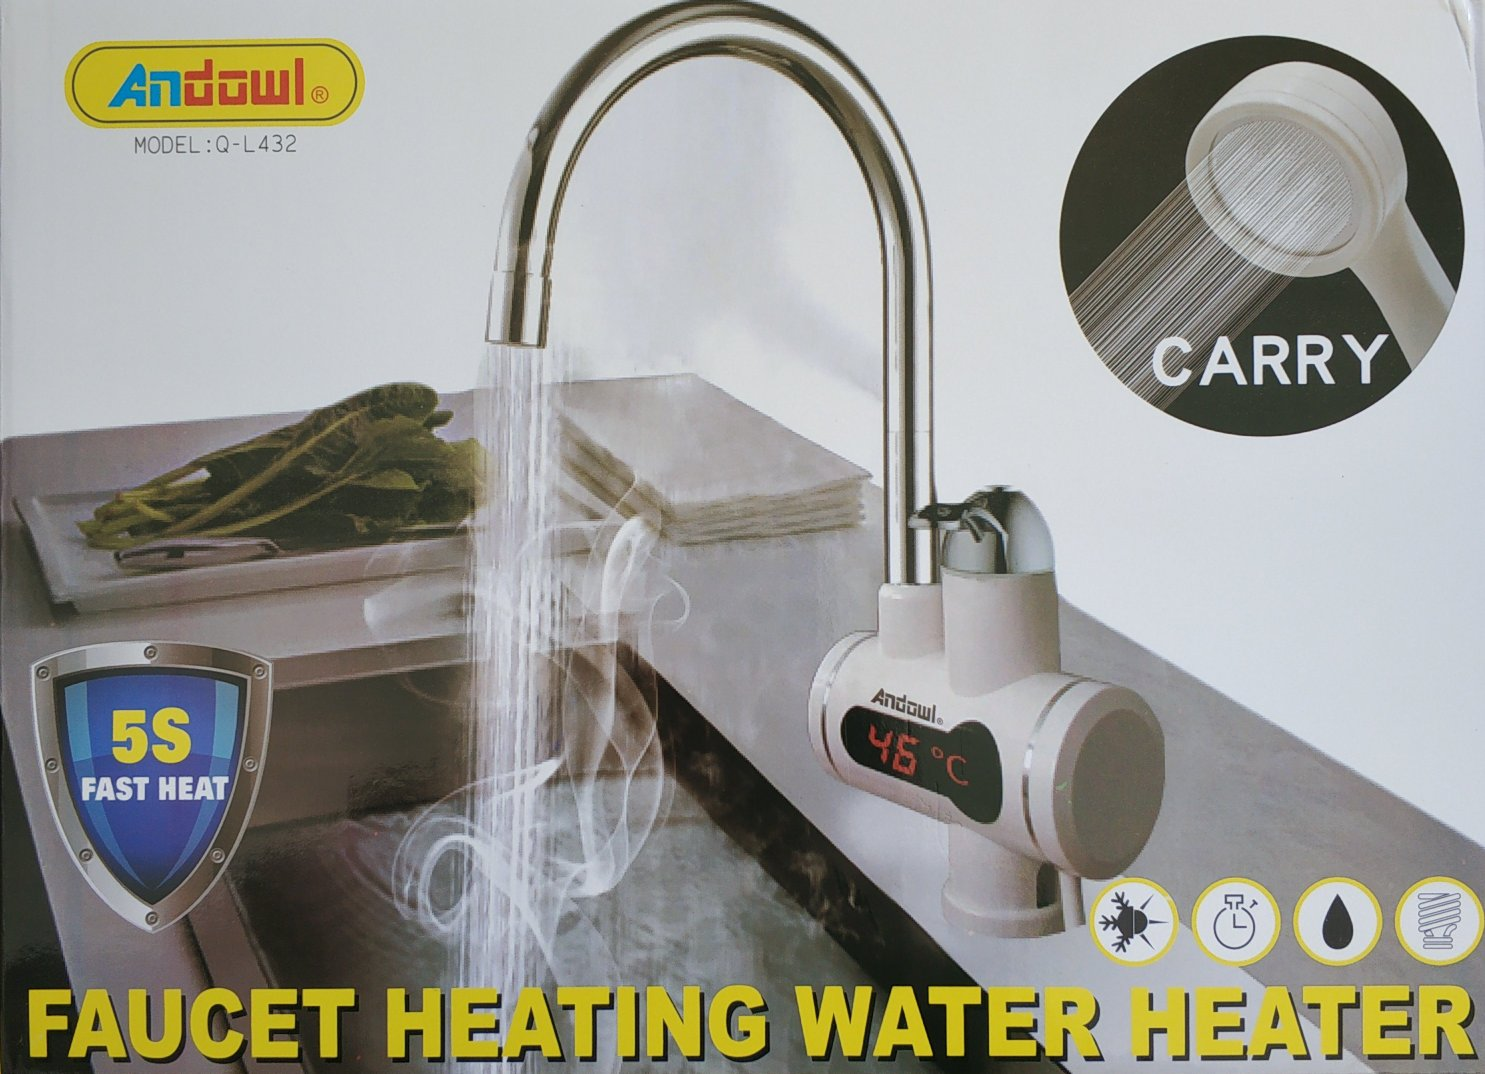 Andowl Q-L432 Faucet Heating Water Heater